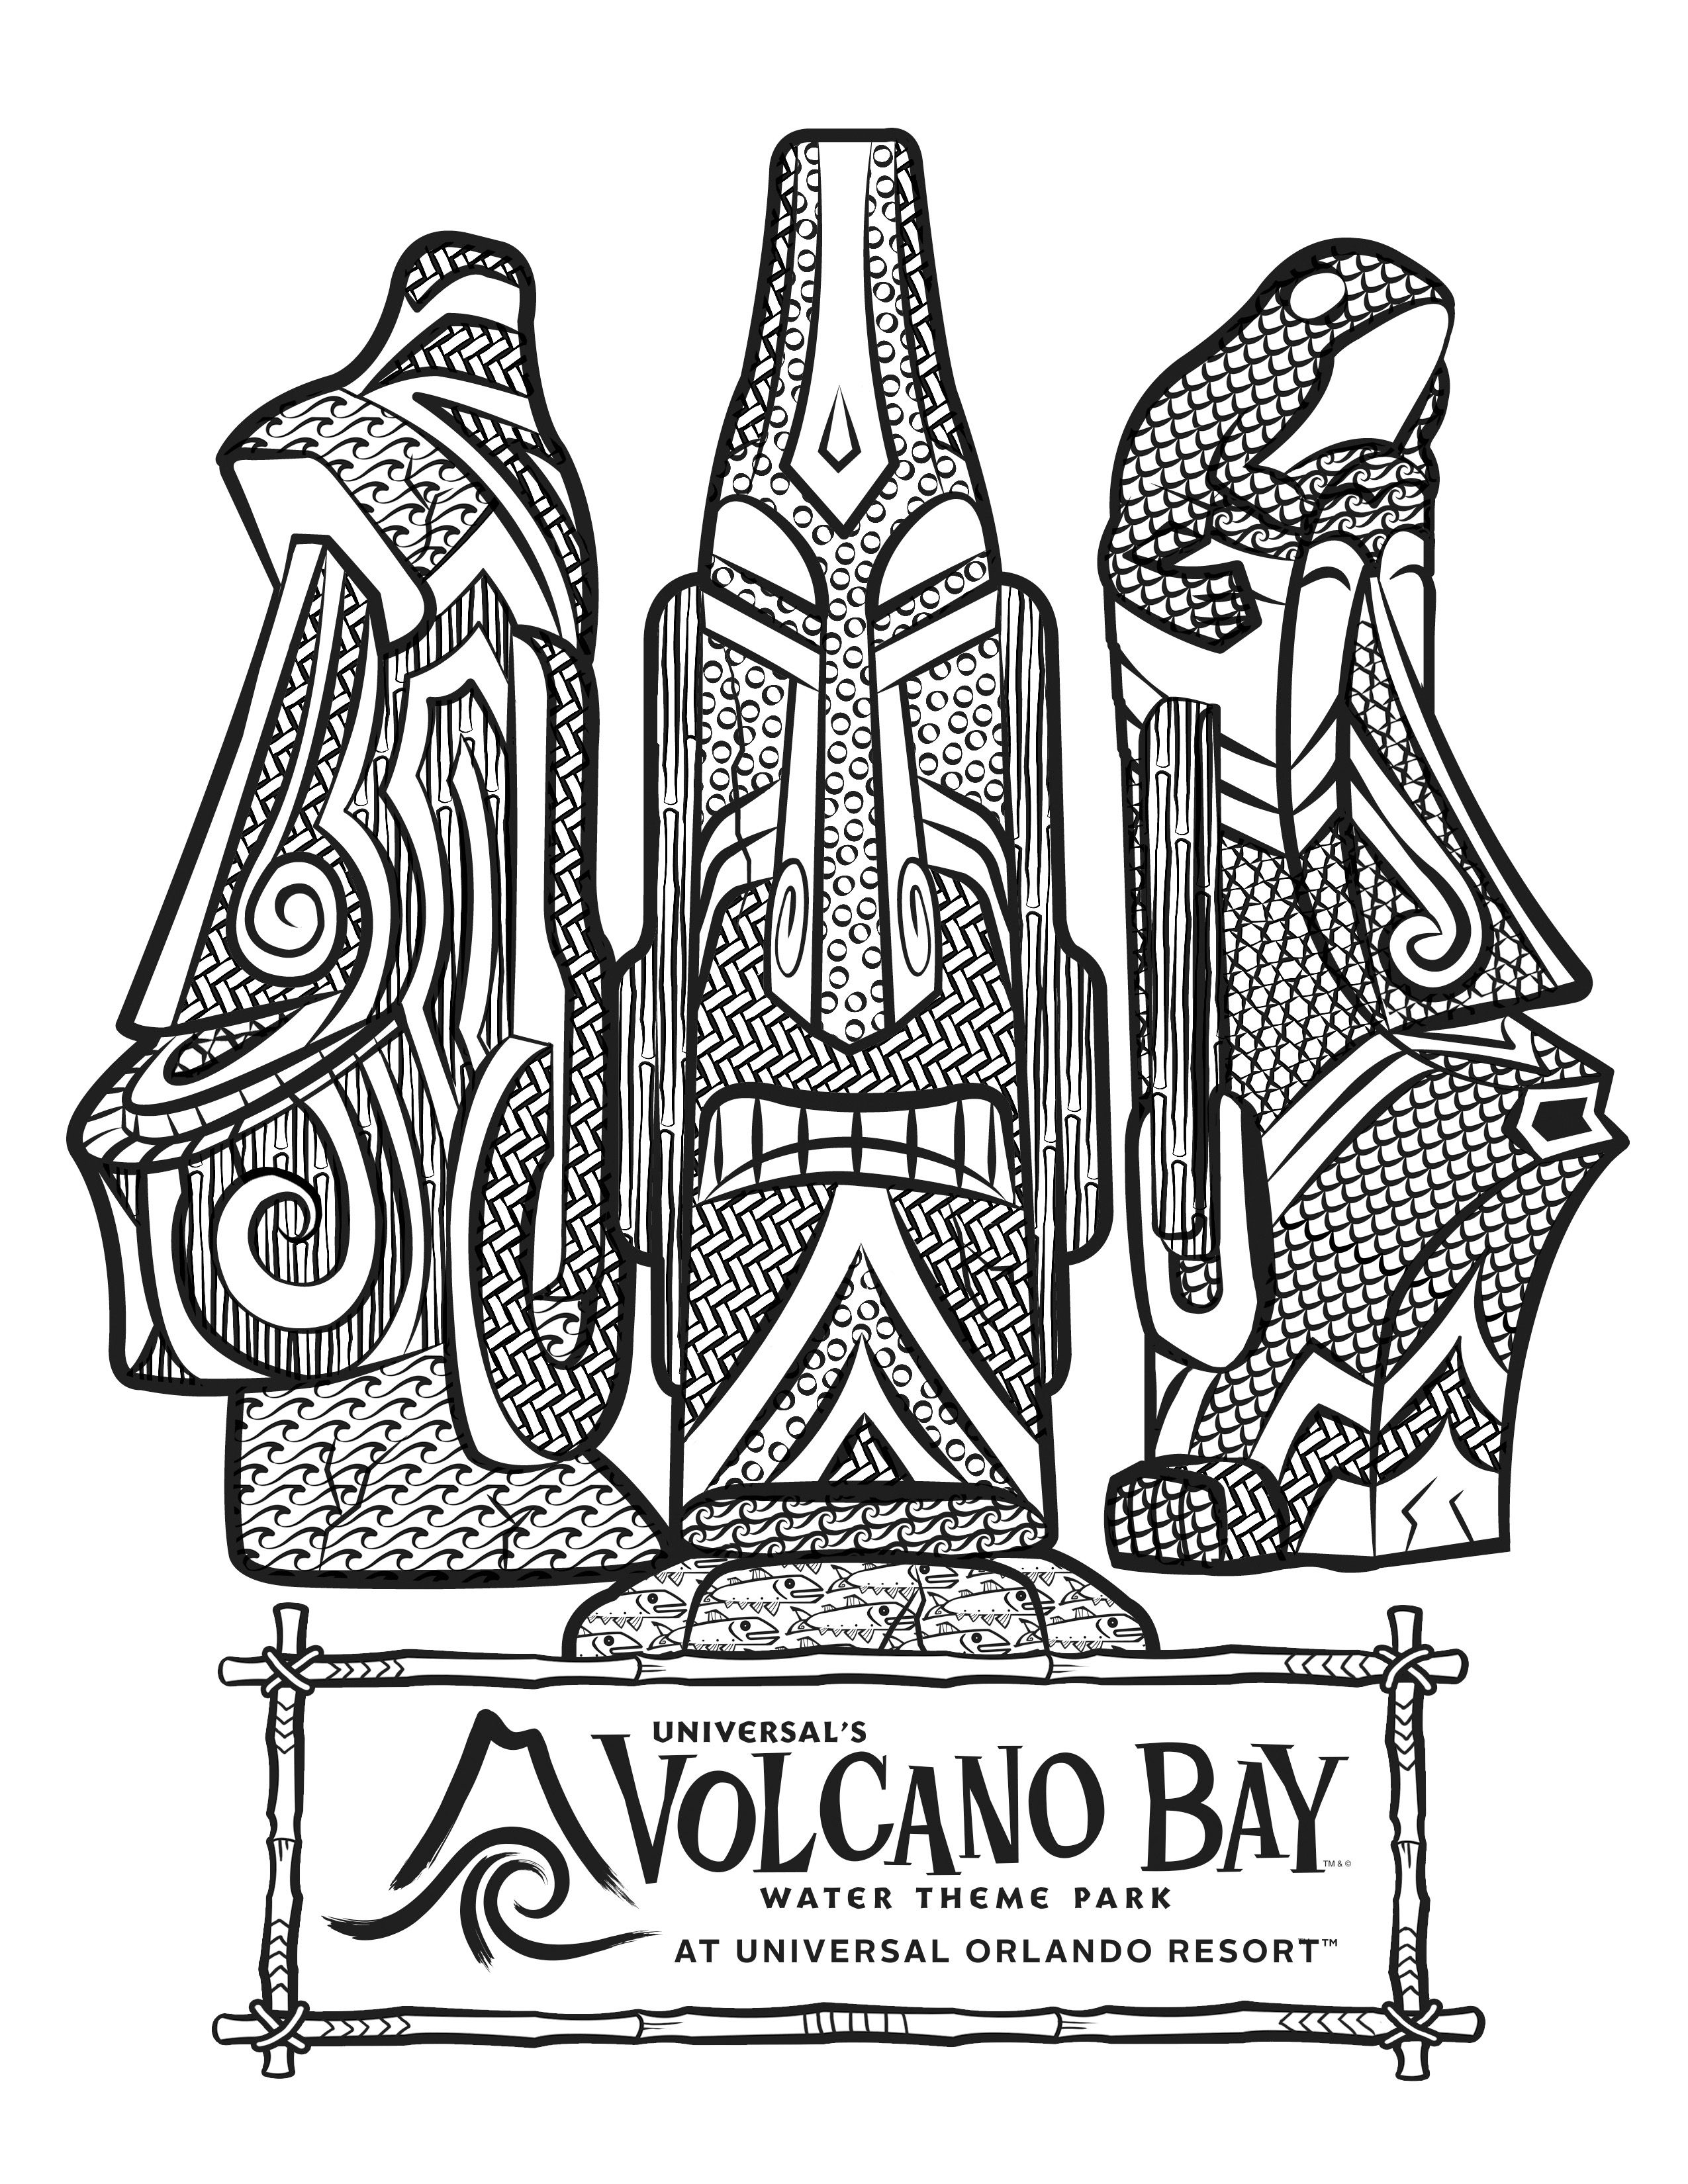 universal movie coloring pages | Universal's Volcano Bay Tikis Coloring Page | Theme Park ...